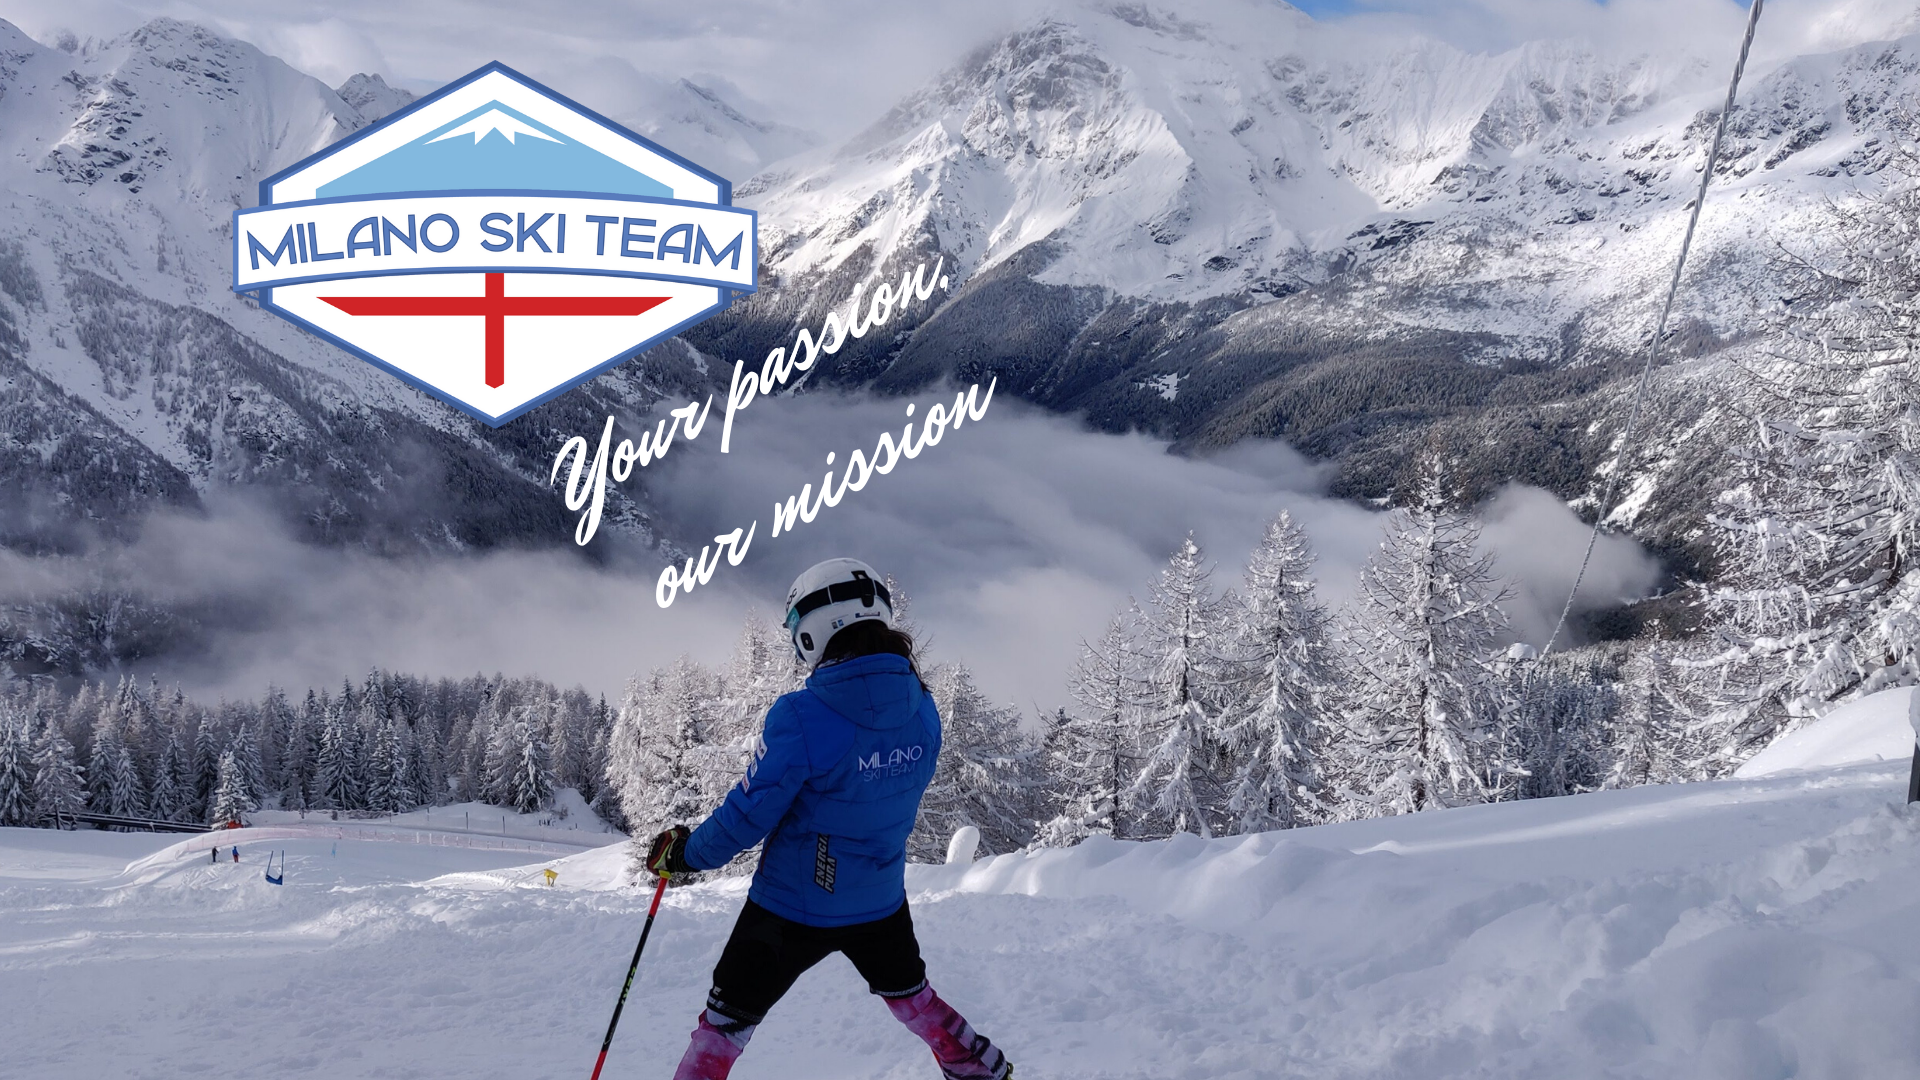 milano ski team sci club milano